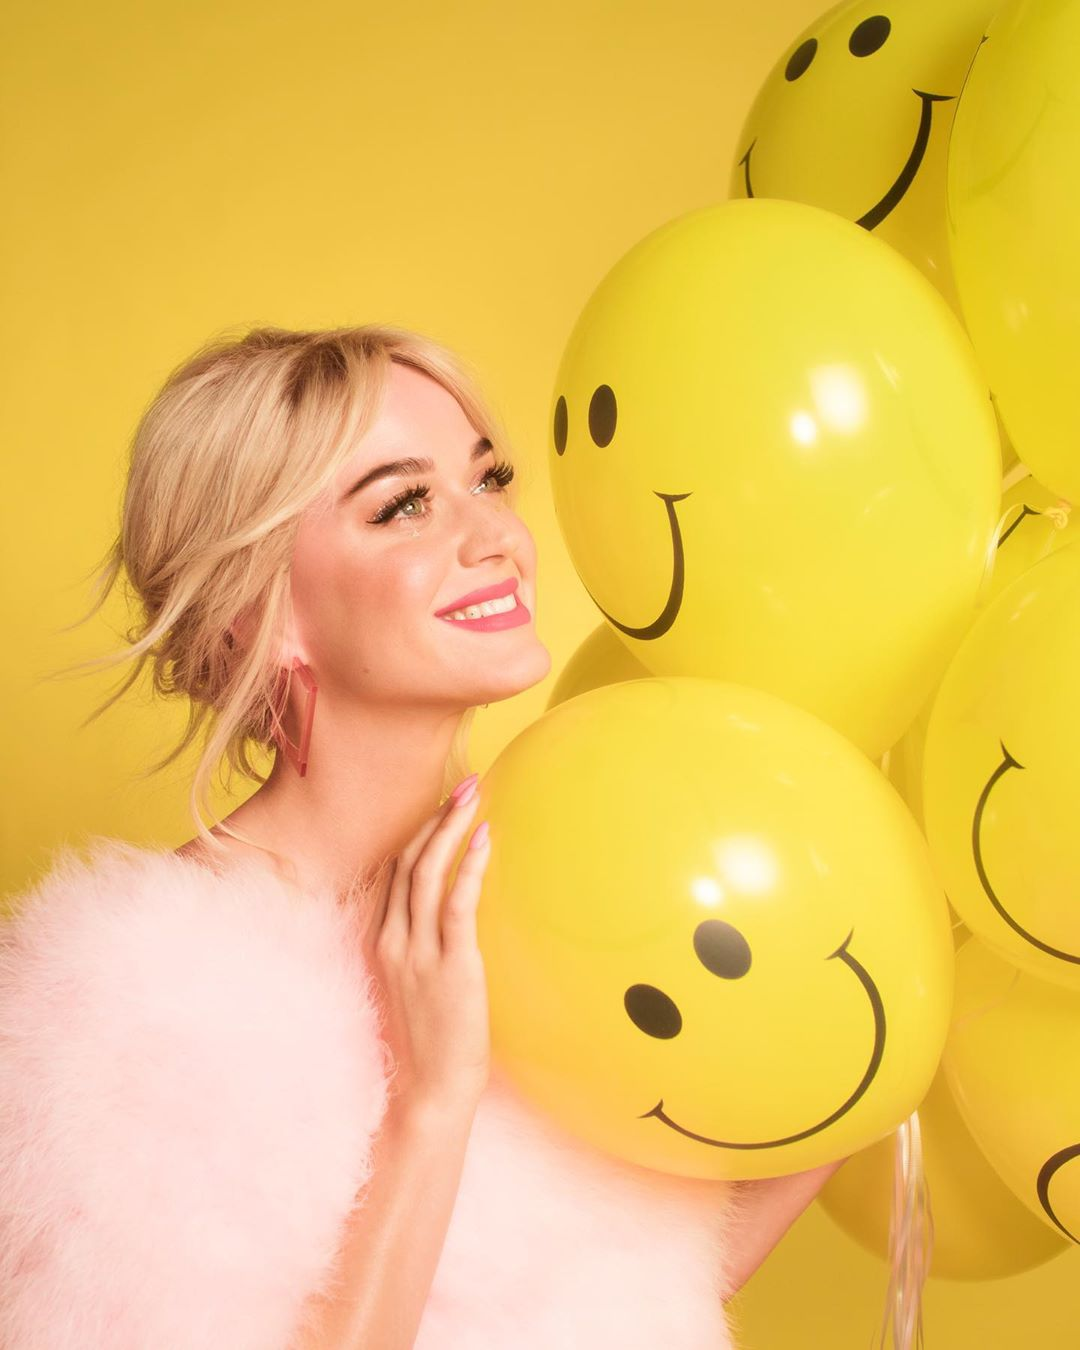 katy perry 2020 - Katy Perry - Smile (Album)